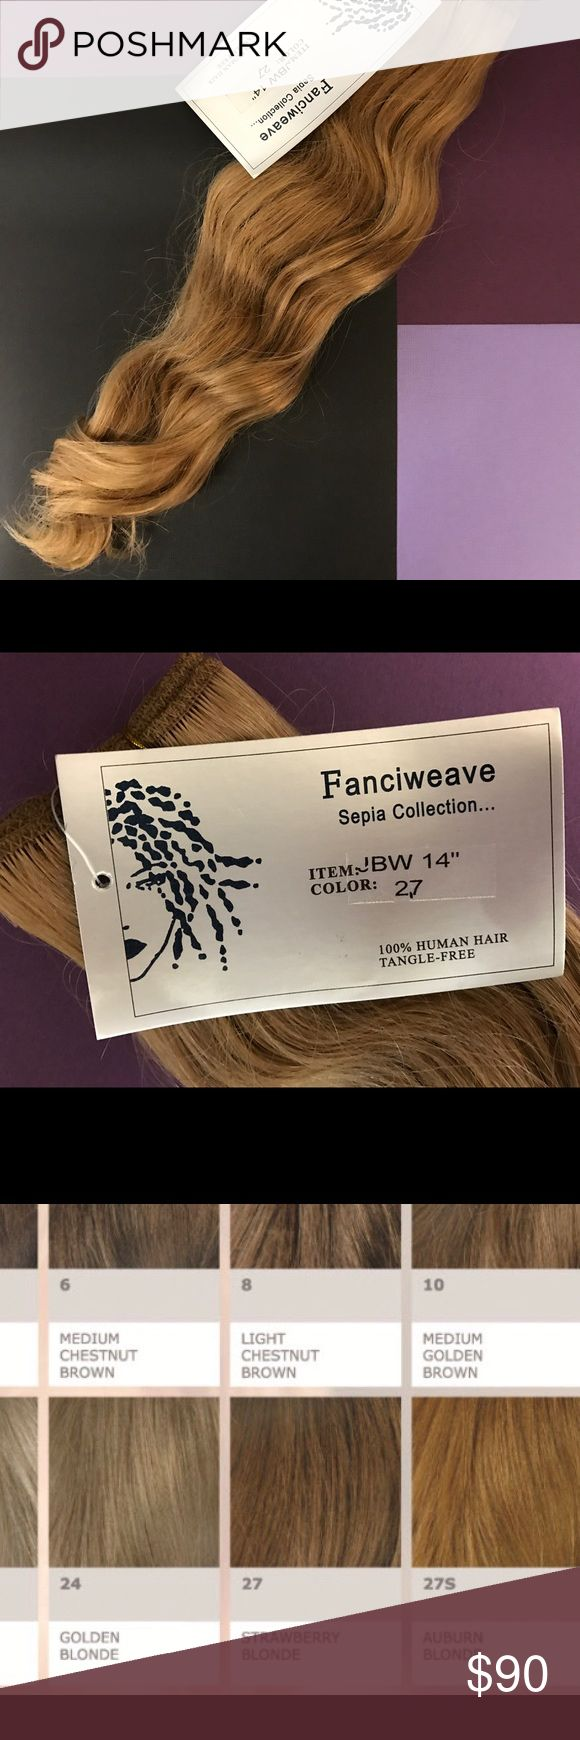 """Hair extensions Sepia Collection Fanciweave 100% human hair extensions 14"""" long, brand new in original packaging. The color of the extensions is 27S (auburn blonde) on the attached color chart. Great quality hair. Sepia Collection Other"""